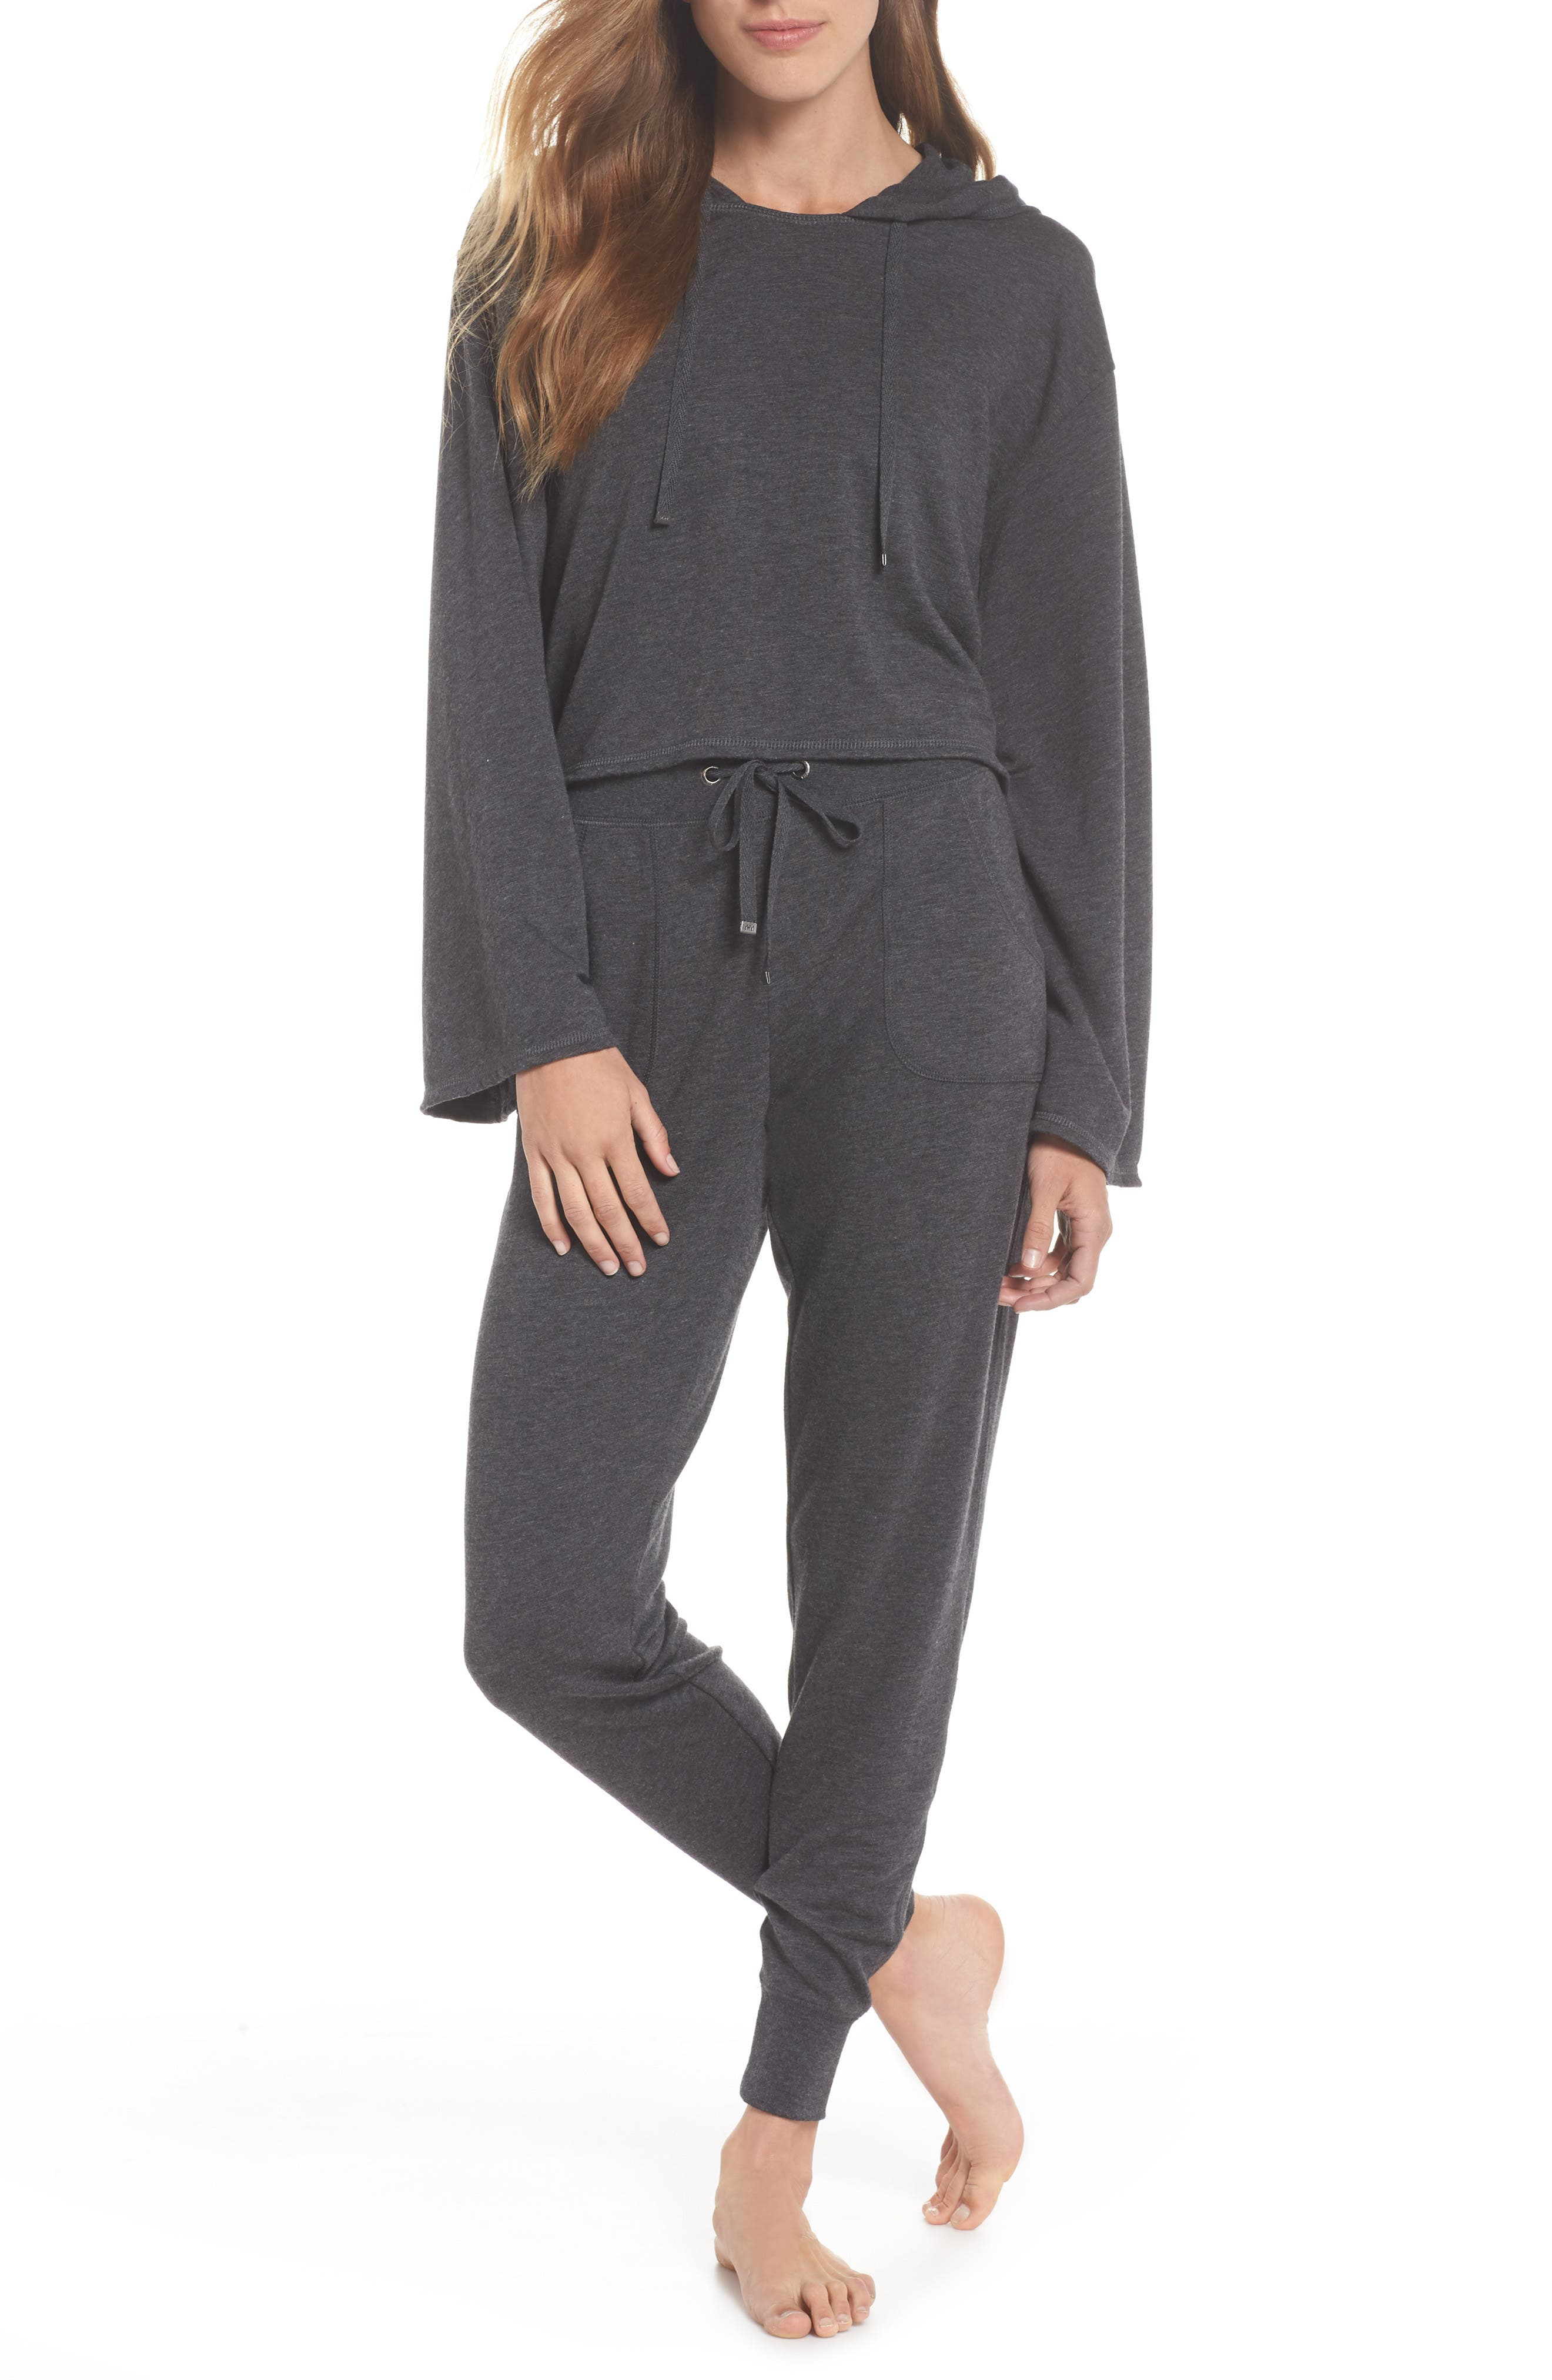 All About It Lounge Pants,                             Alternate thumbnail 6, color,                             030